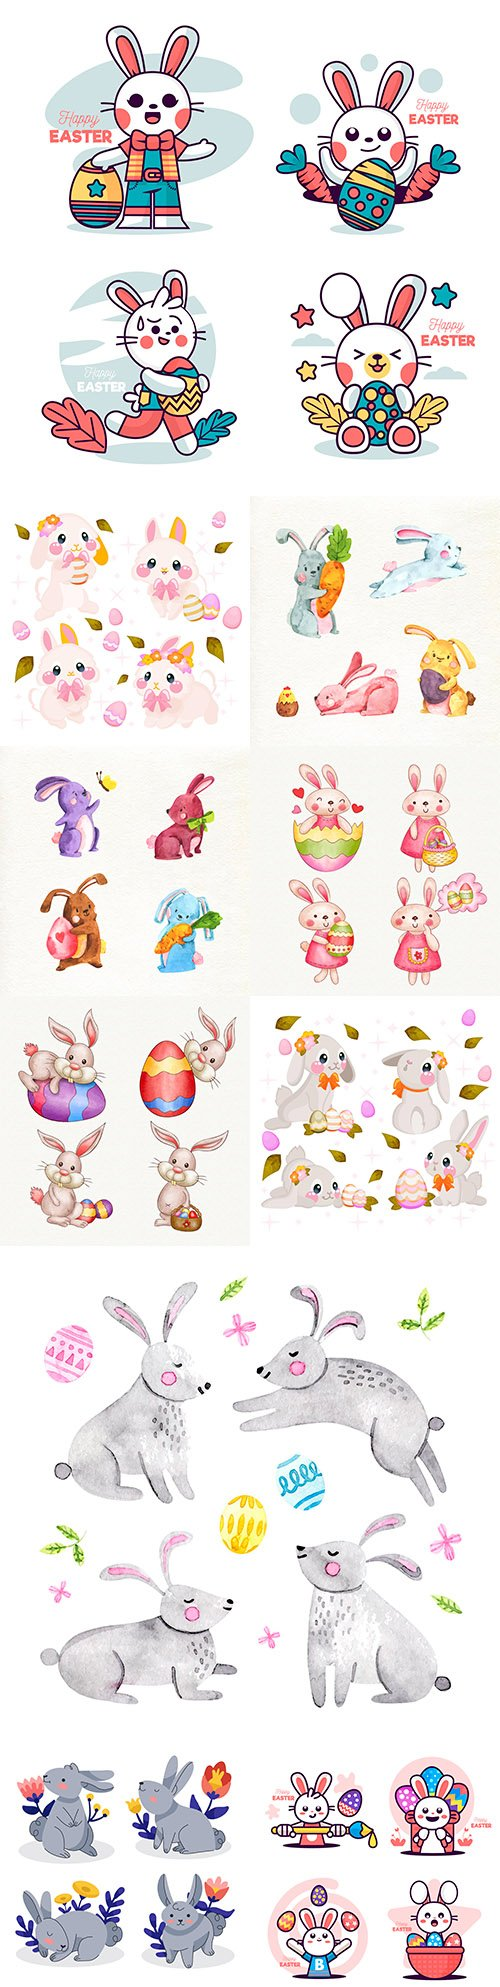 Easter rabbit collection of watercolor and flat illustrations